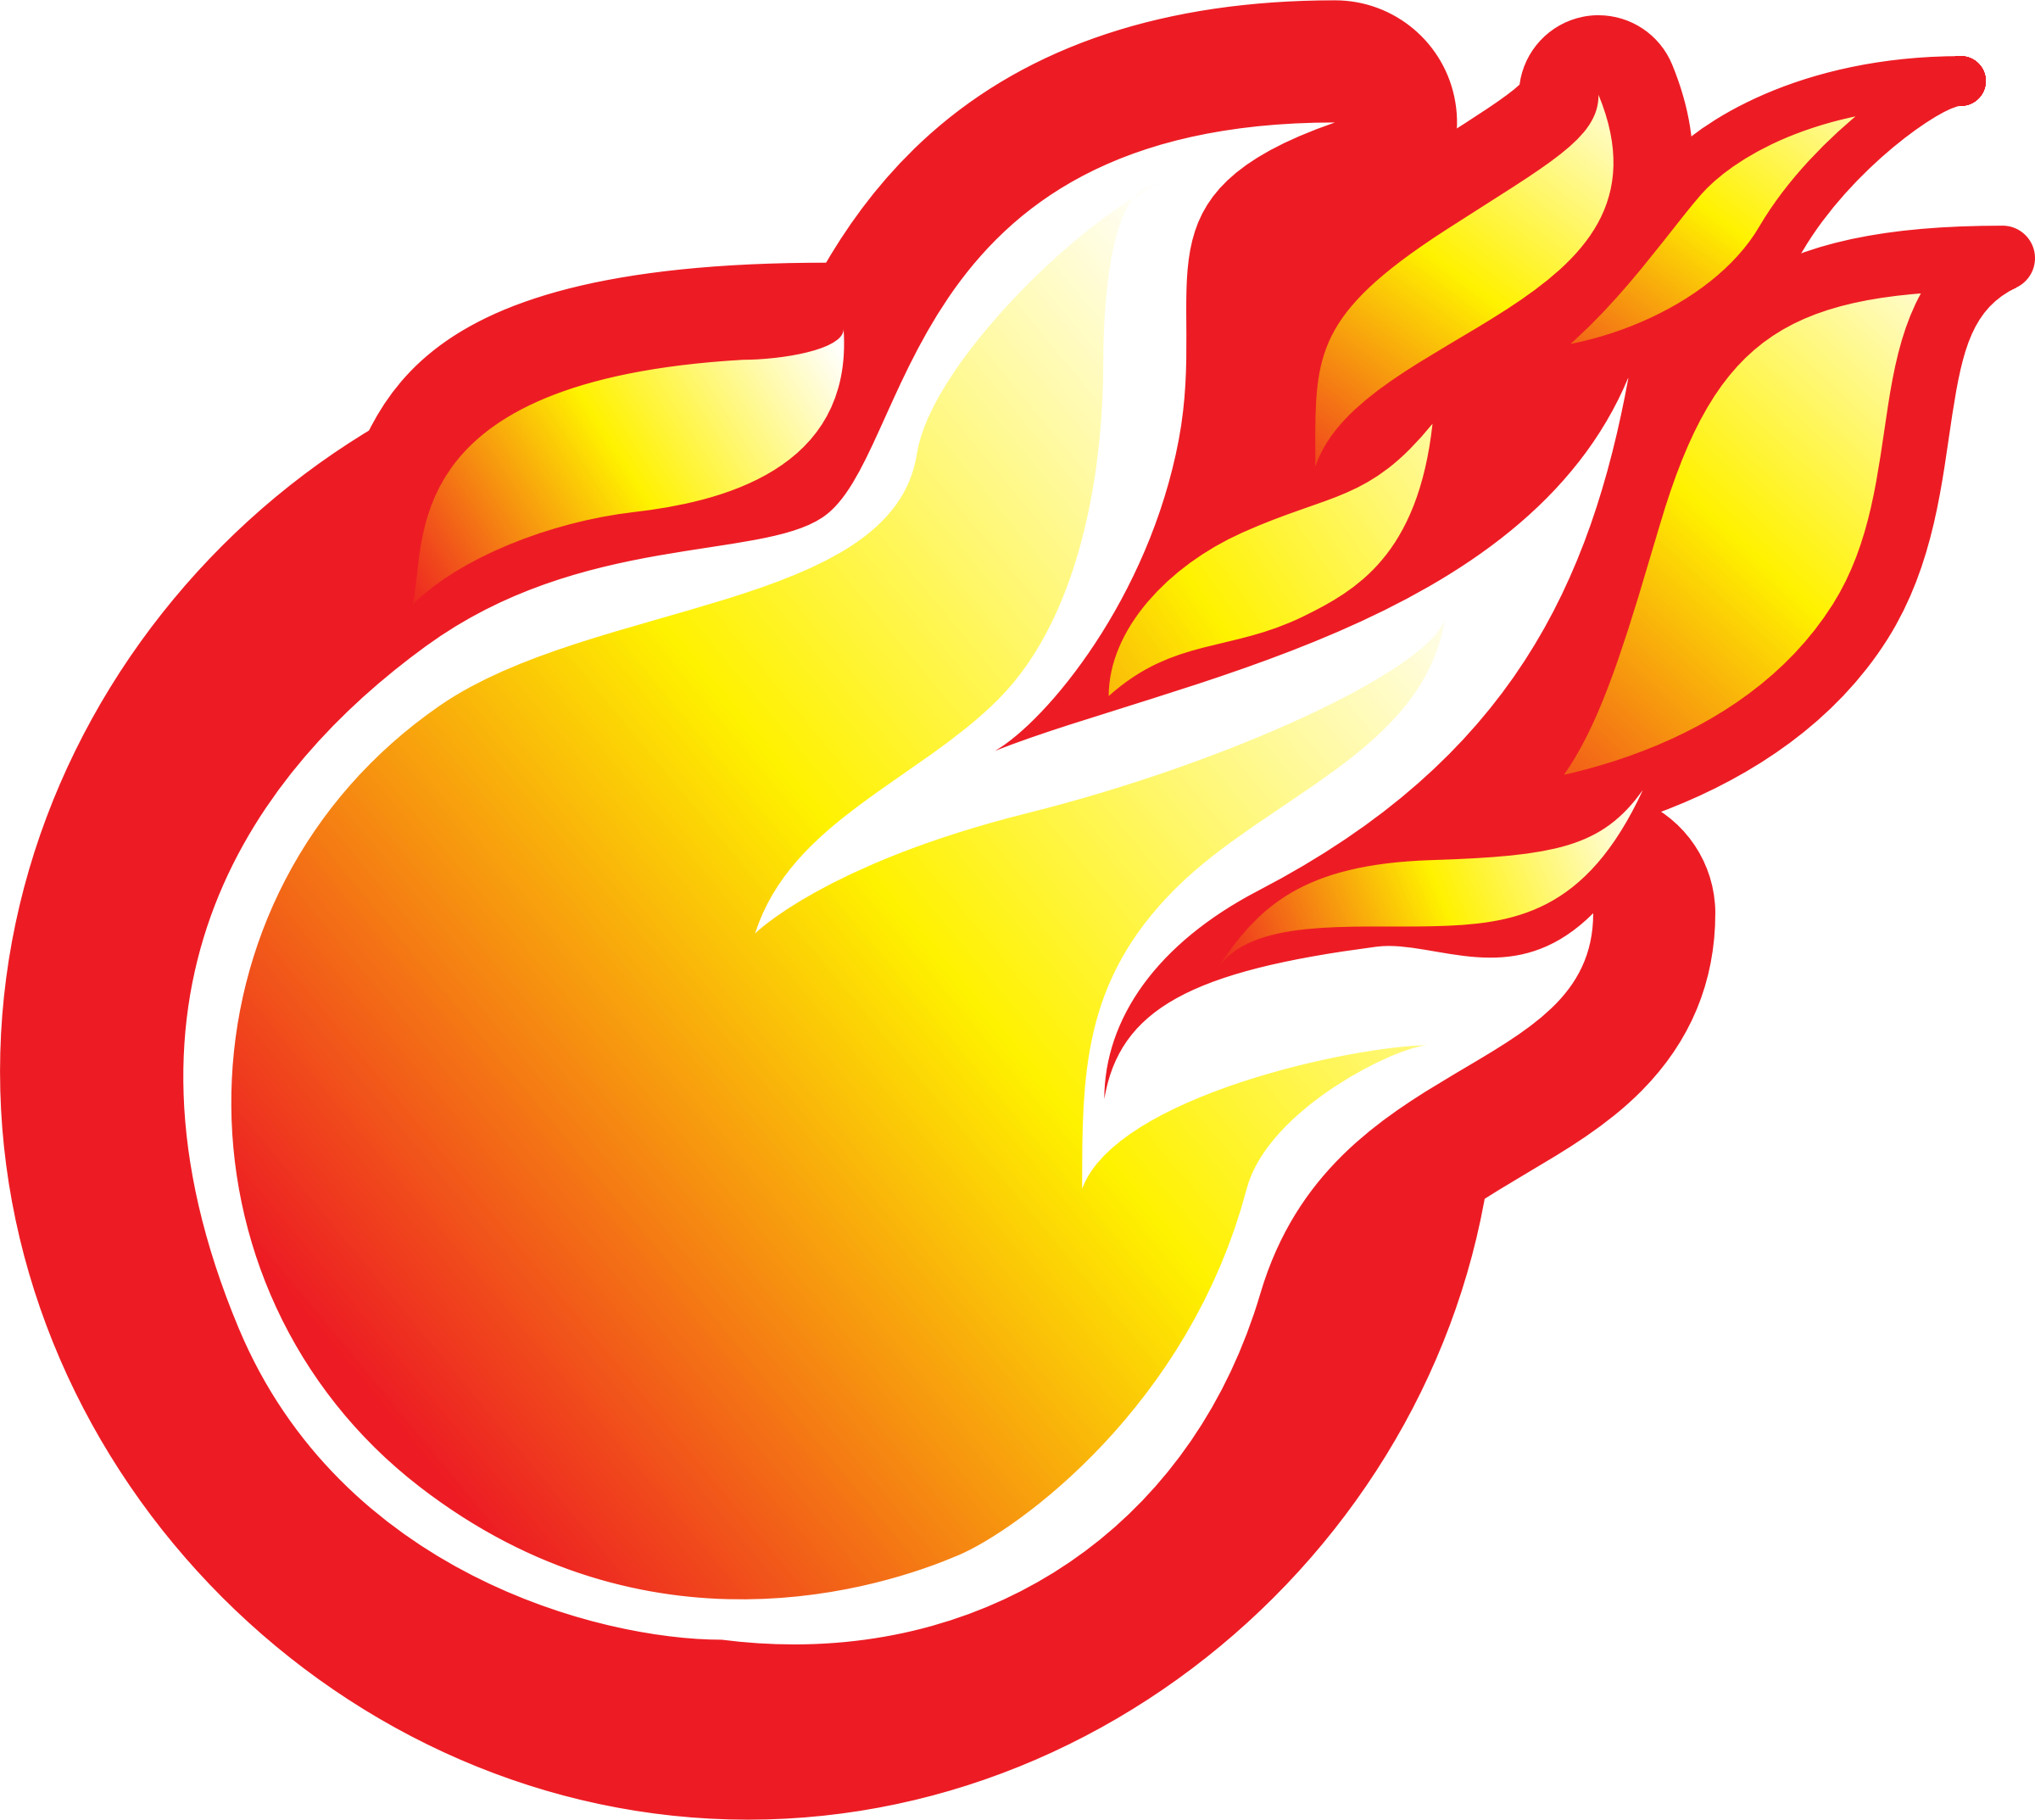 Flame fire clipart 6 image 6980 Picture logo, Fire